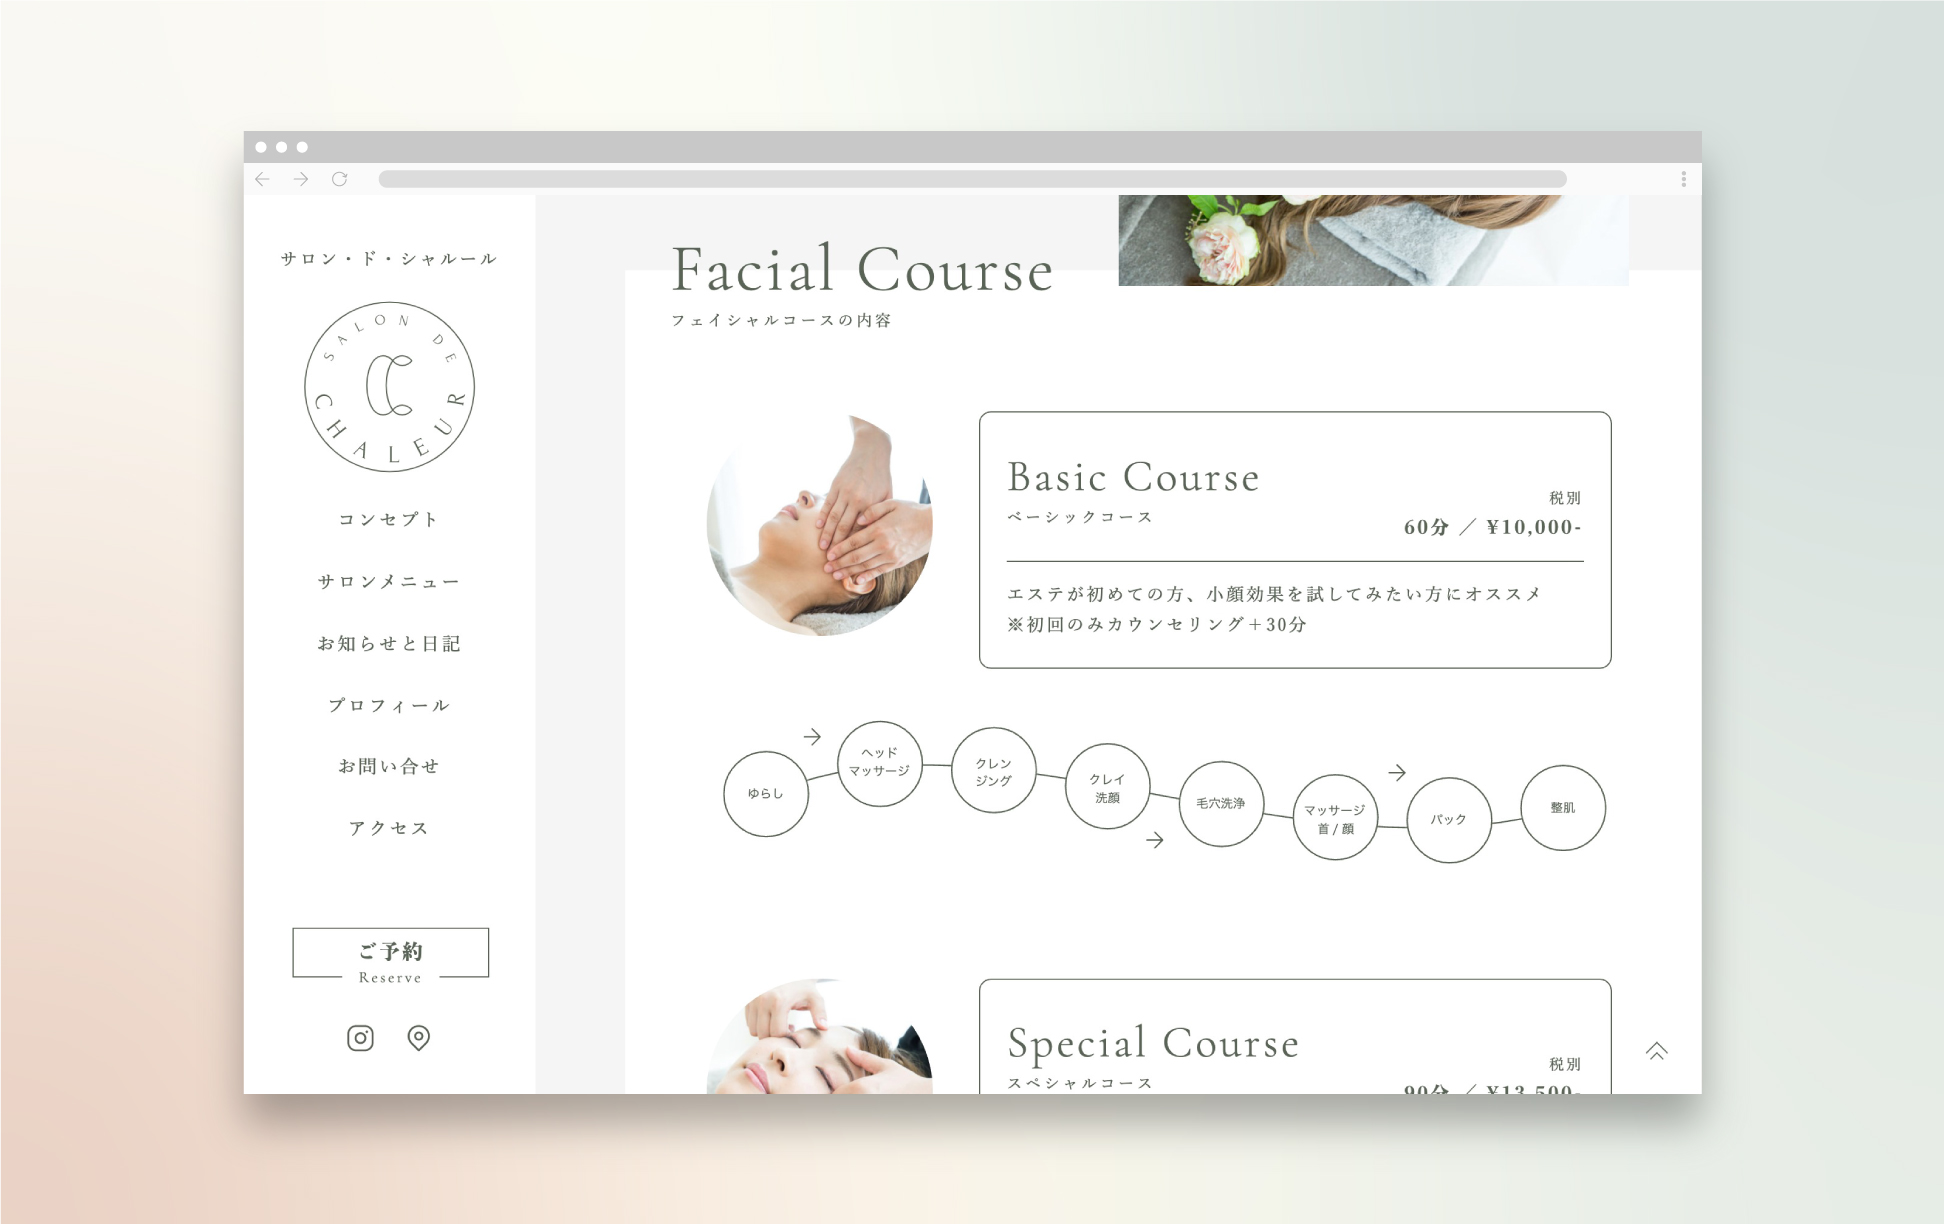 SALON DE CHALEUR|シャルール Web Designed by MNRC